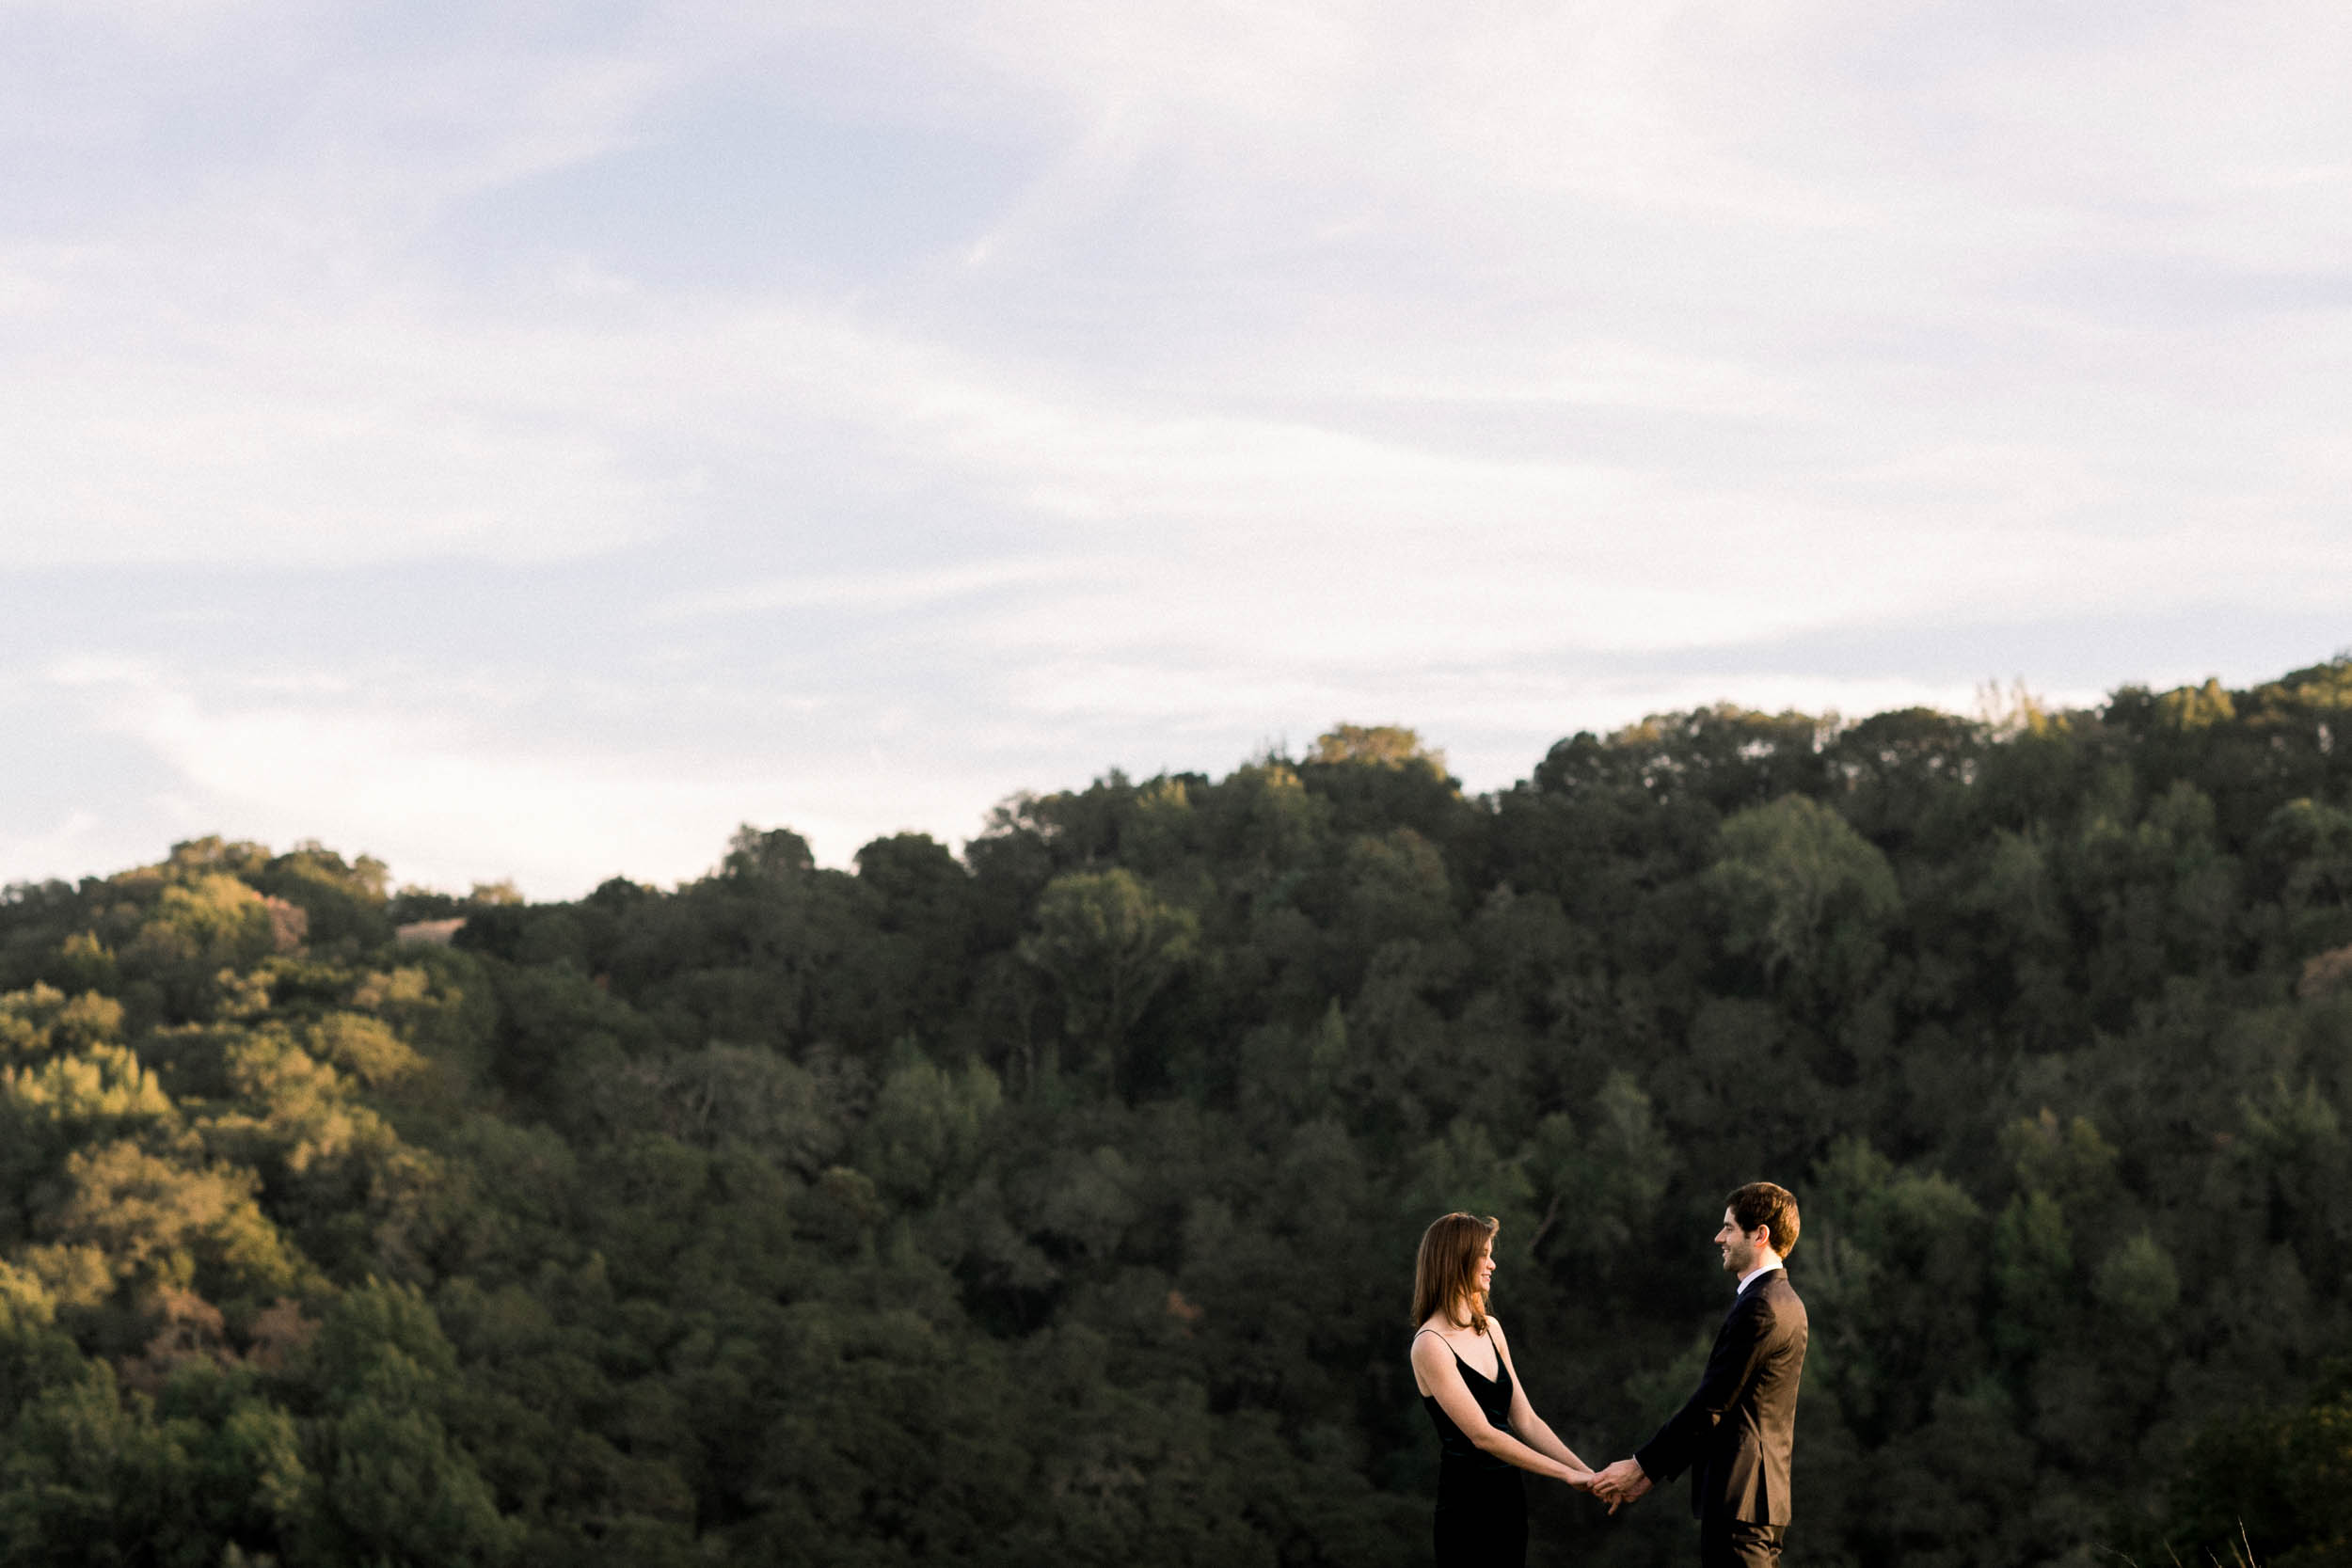 010319_E+J_Foothills Park Engagement_Buena Lane Photography_99.jpg